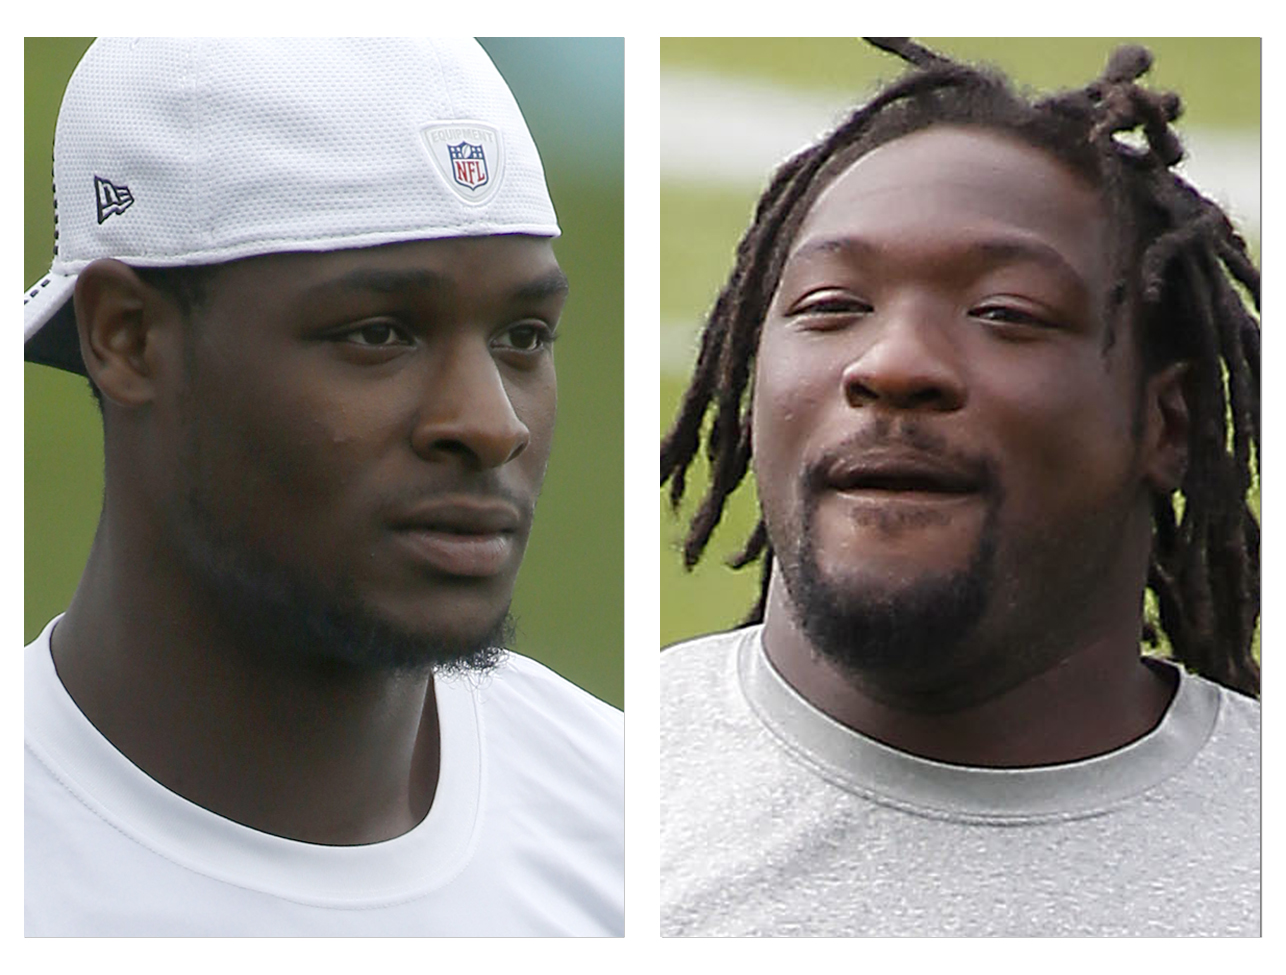 From left are Pittsburgh Steelers running backs Le'Veon Bell, in a July 30, 2014, file photo, and Steelers' LeGarrrette Blount, in a Sept. 10, 2013, file photo, when he was with the New England Patriots. Steelers running backs Bell and Blount will be charged with marijuana possession following a traffic stop Wednesday afternoon, Aug. 20, 2014, near Pittsburgh. Ross Township detective Brian Kohlhepp said traffic officer Sean Stafiej pulled over a Camaro operated by Bell around 1:30 p.m. after Stafiej, who was on a motorcycle, noticed a strong odor of marijuana coming from the vehicle. Stafiej found a 20 gram bag of marijuana inside the car. Bell, Blount and a female passenger all claimed ownership of the marijuana according to police